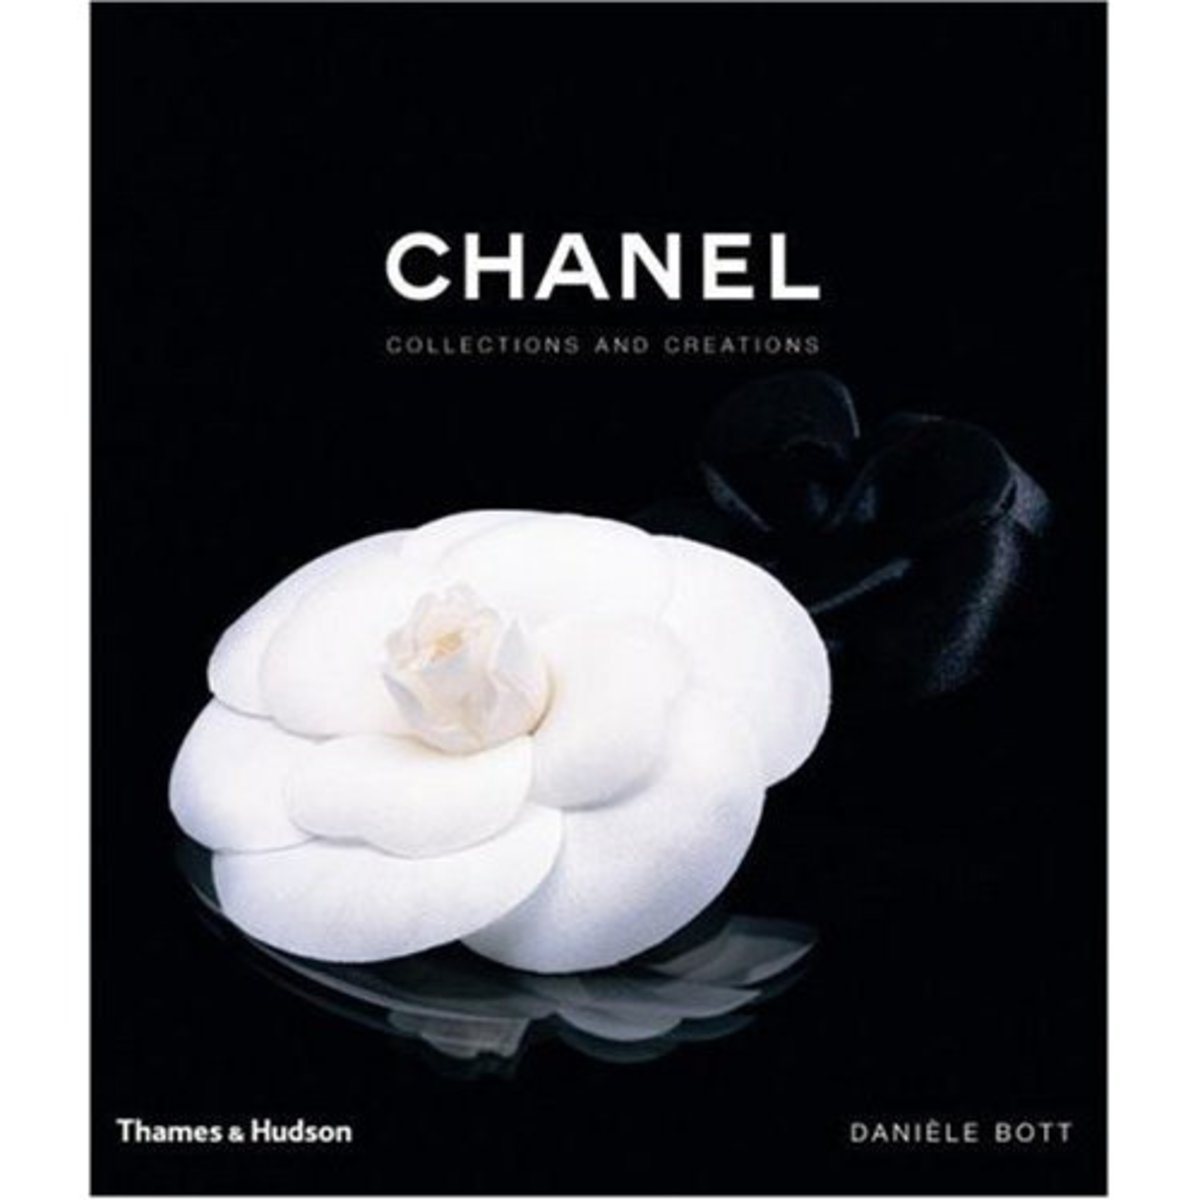 The camillia flower became a symbol of the House of Chanel, and Coco Chanel wore them many times on her 'little black dress.'